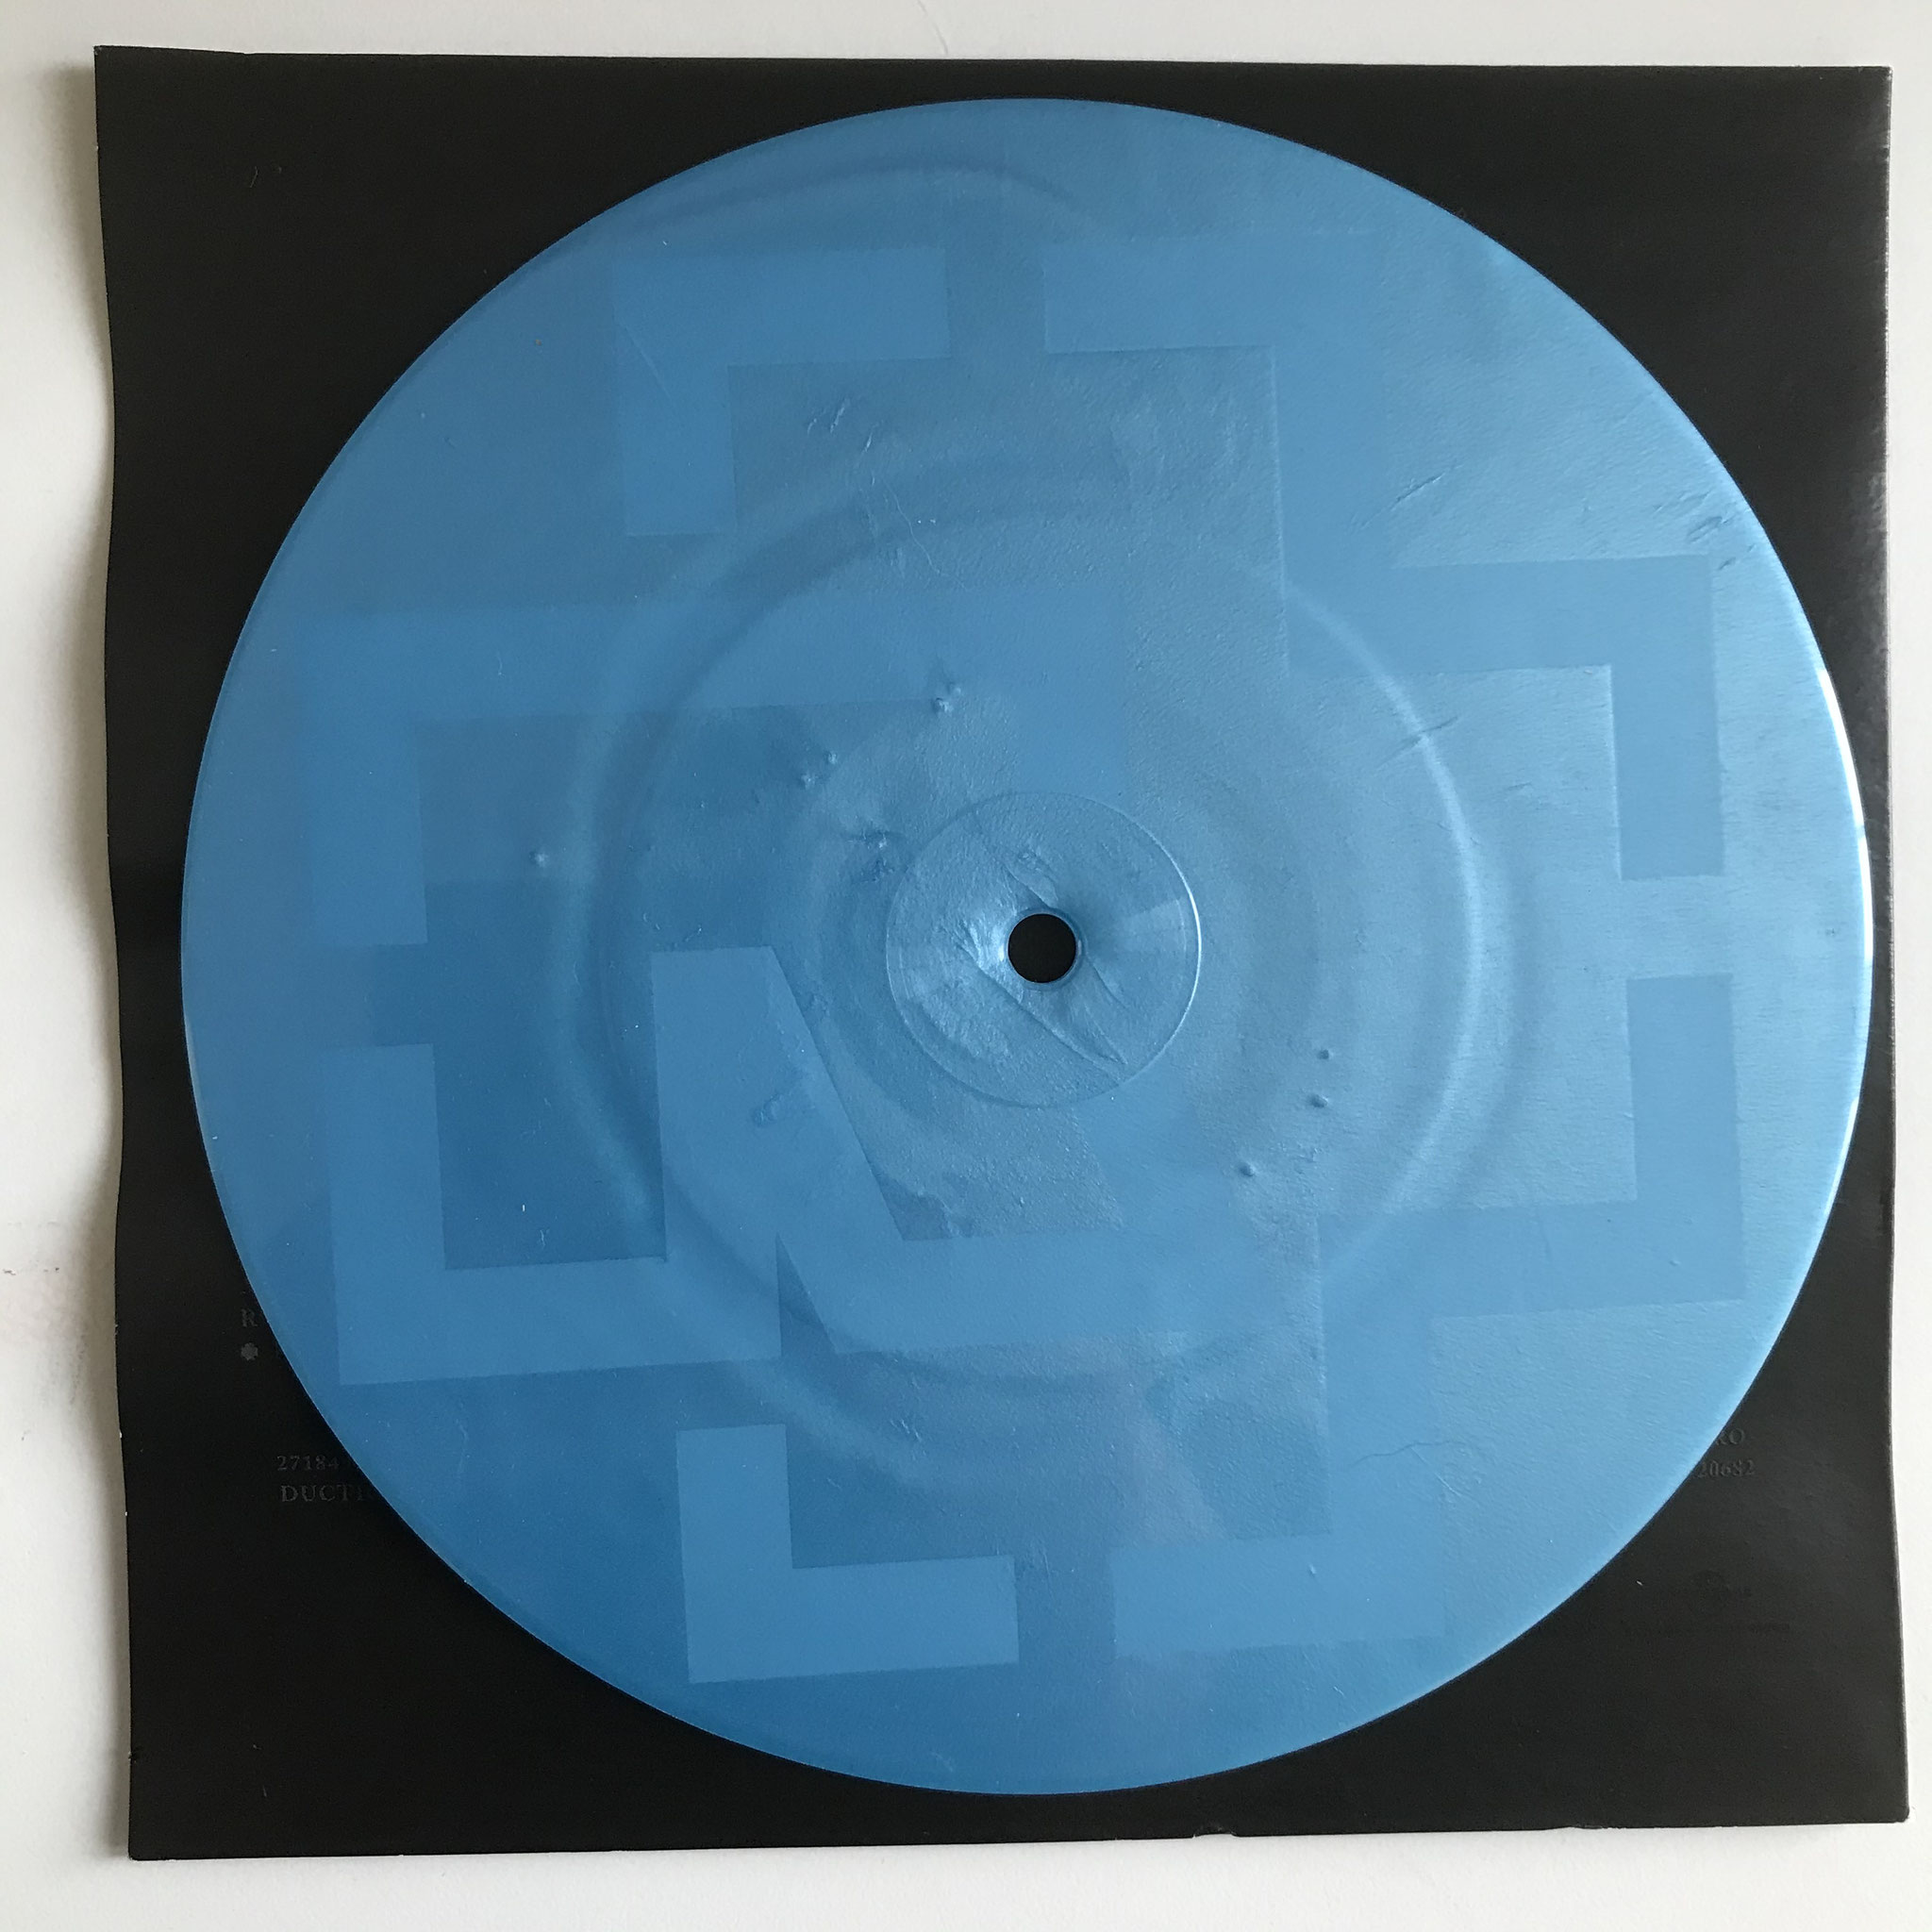 """7"""" Single Sided, Etched, Limited Edition, Numbered, Blue Viagra"""